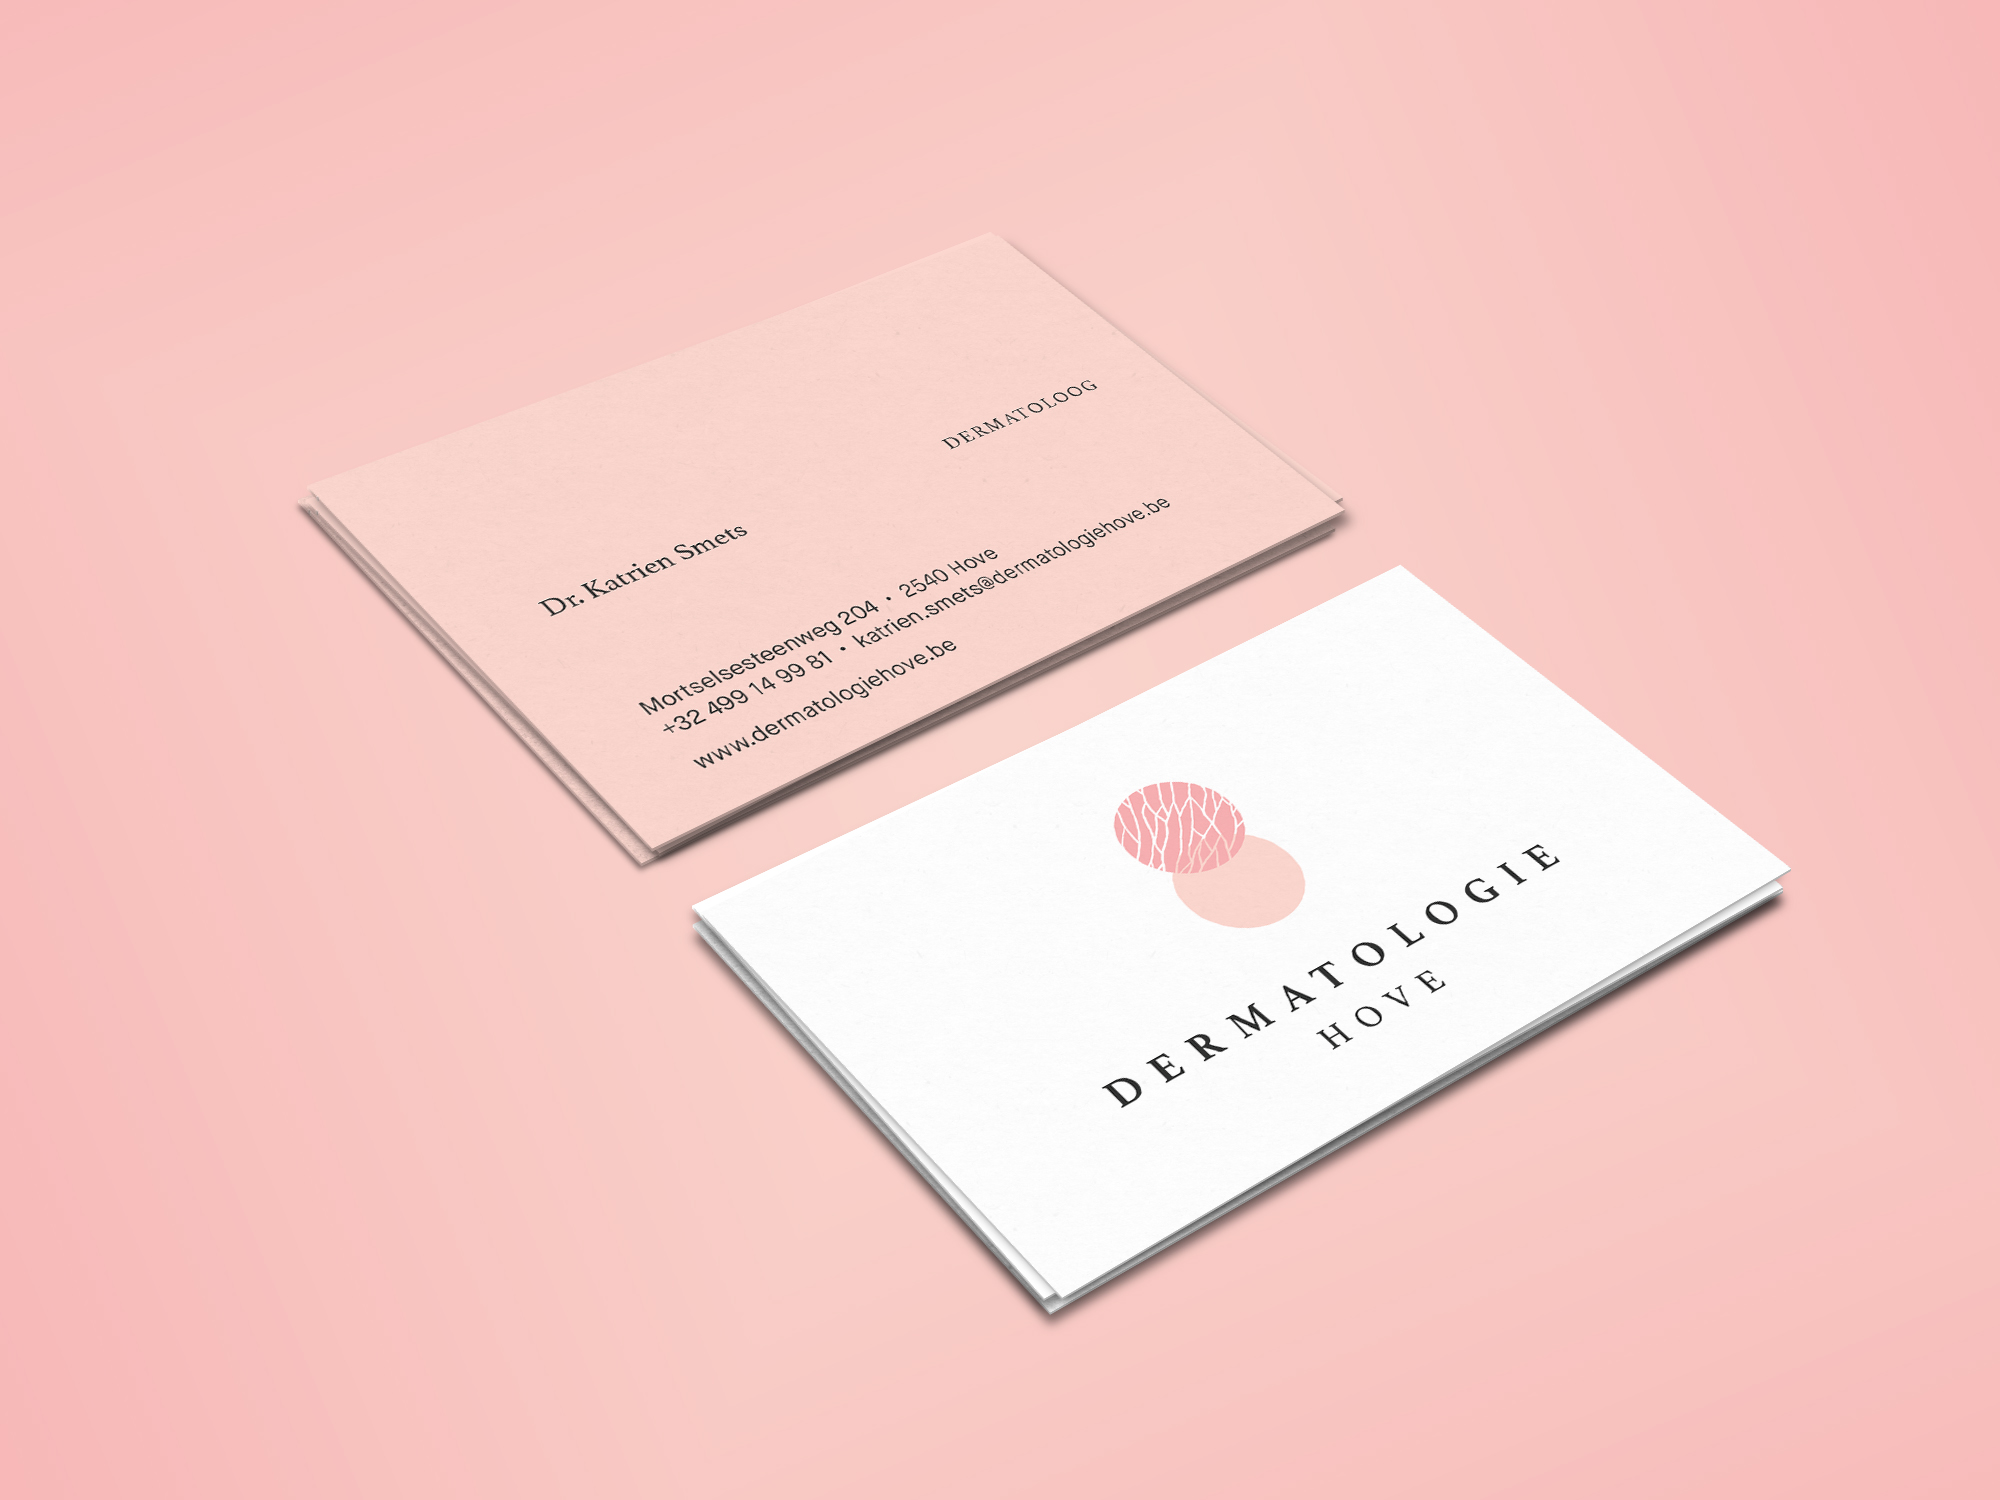 Dermatologie Hove business cards